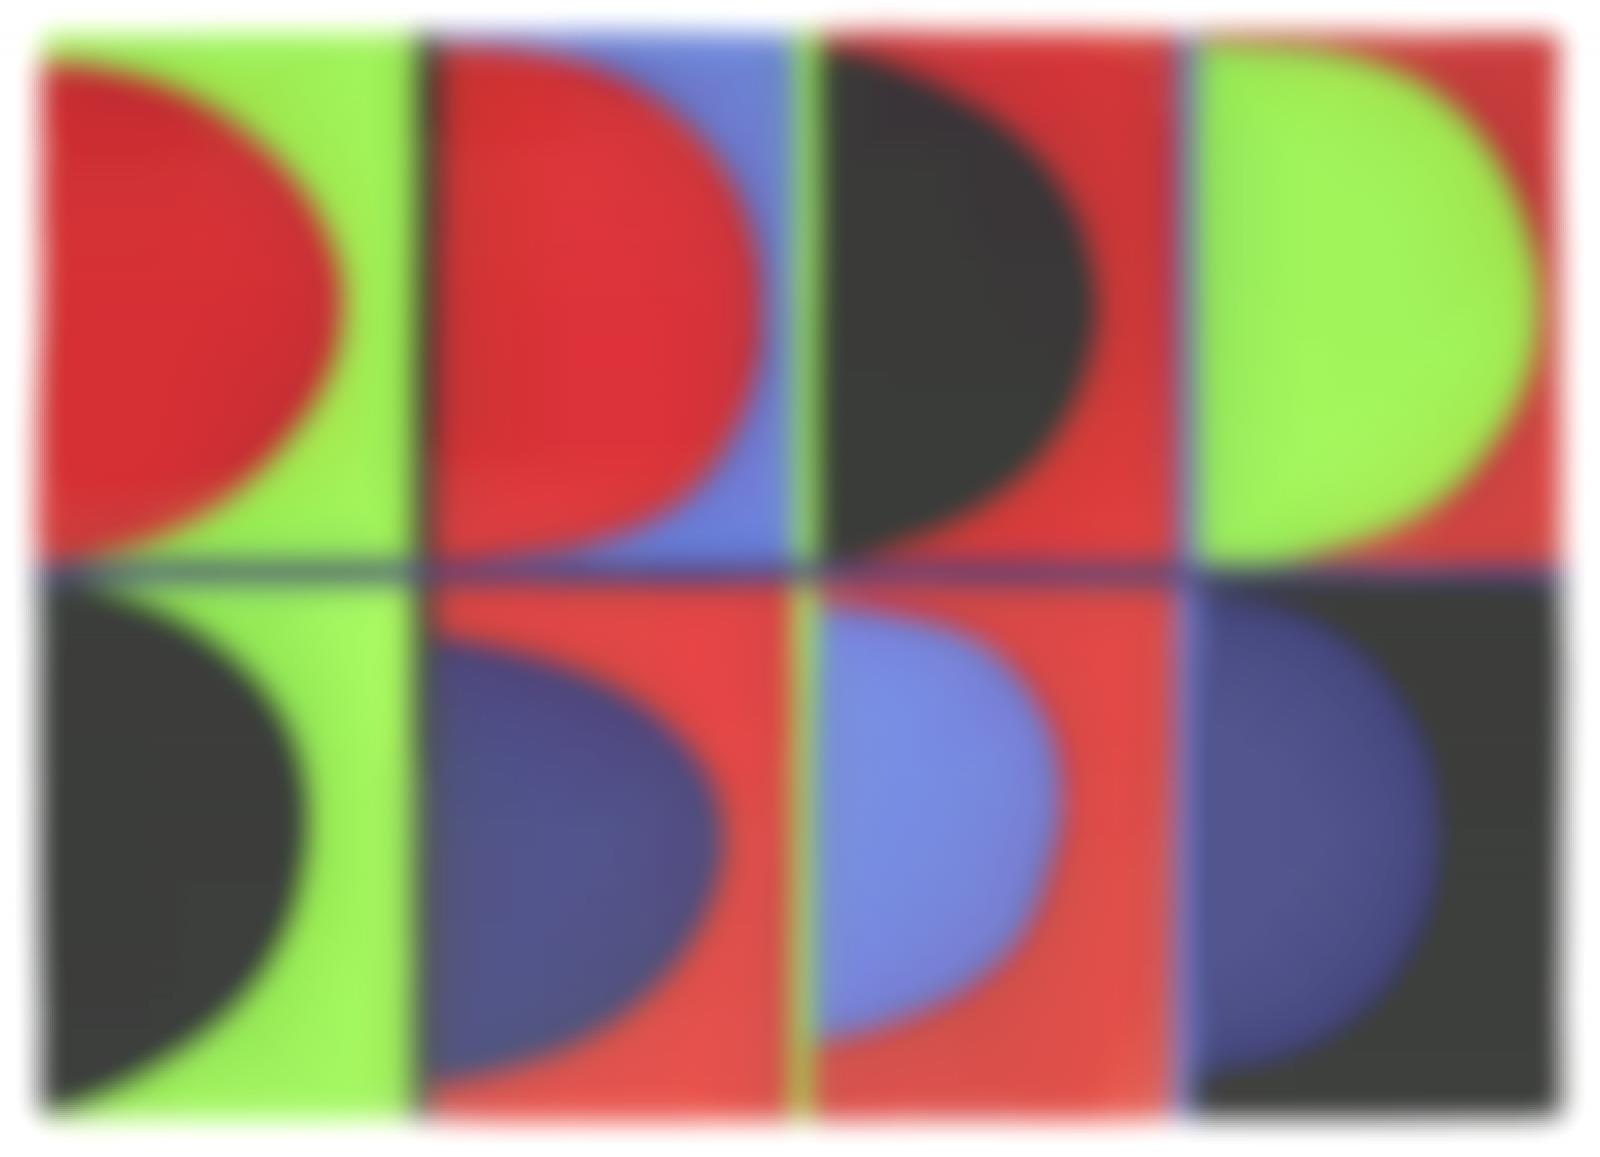 Terry Frost-Red, Blue, Green-1972